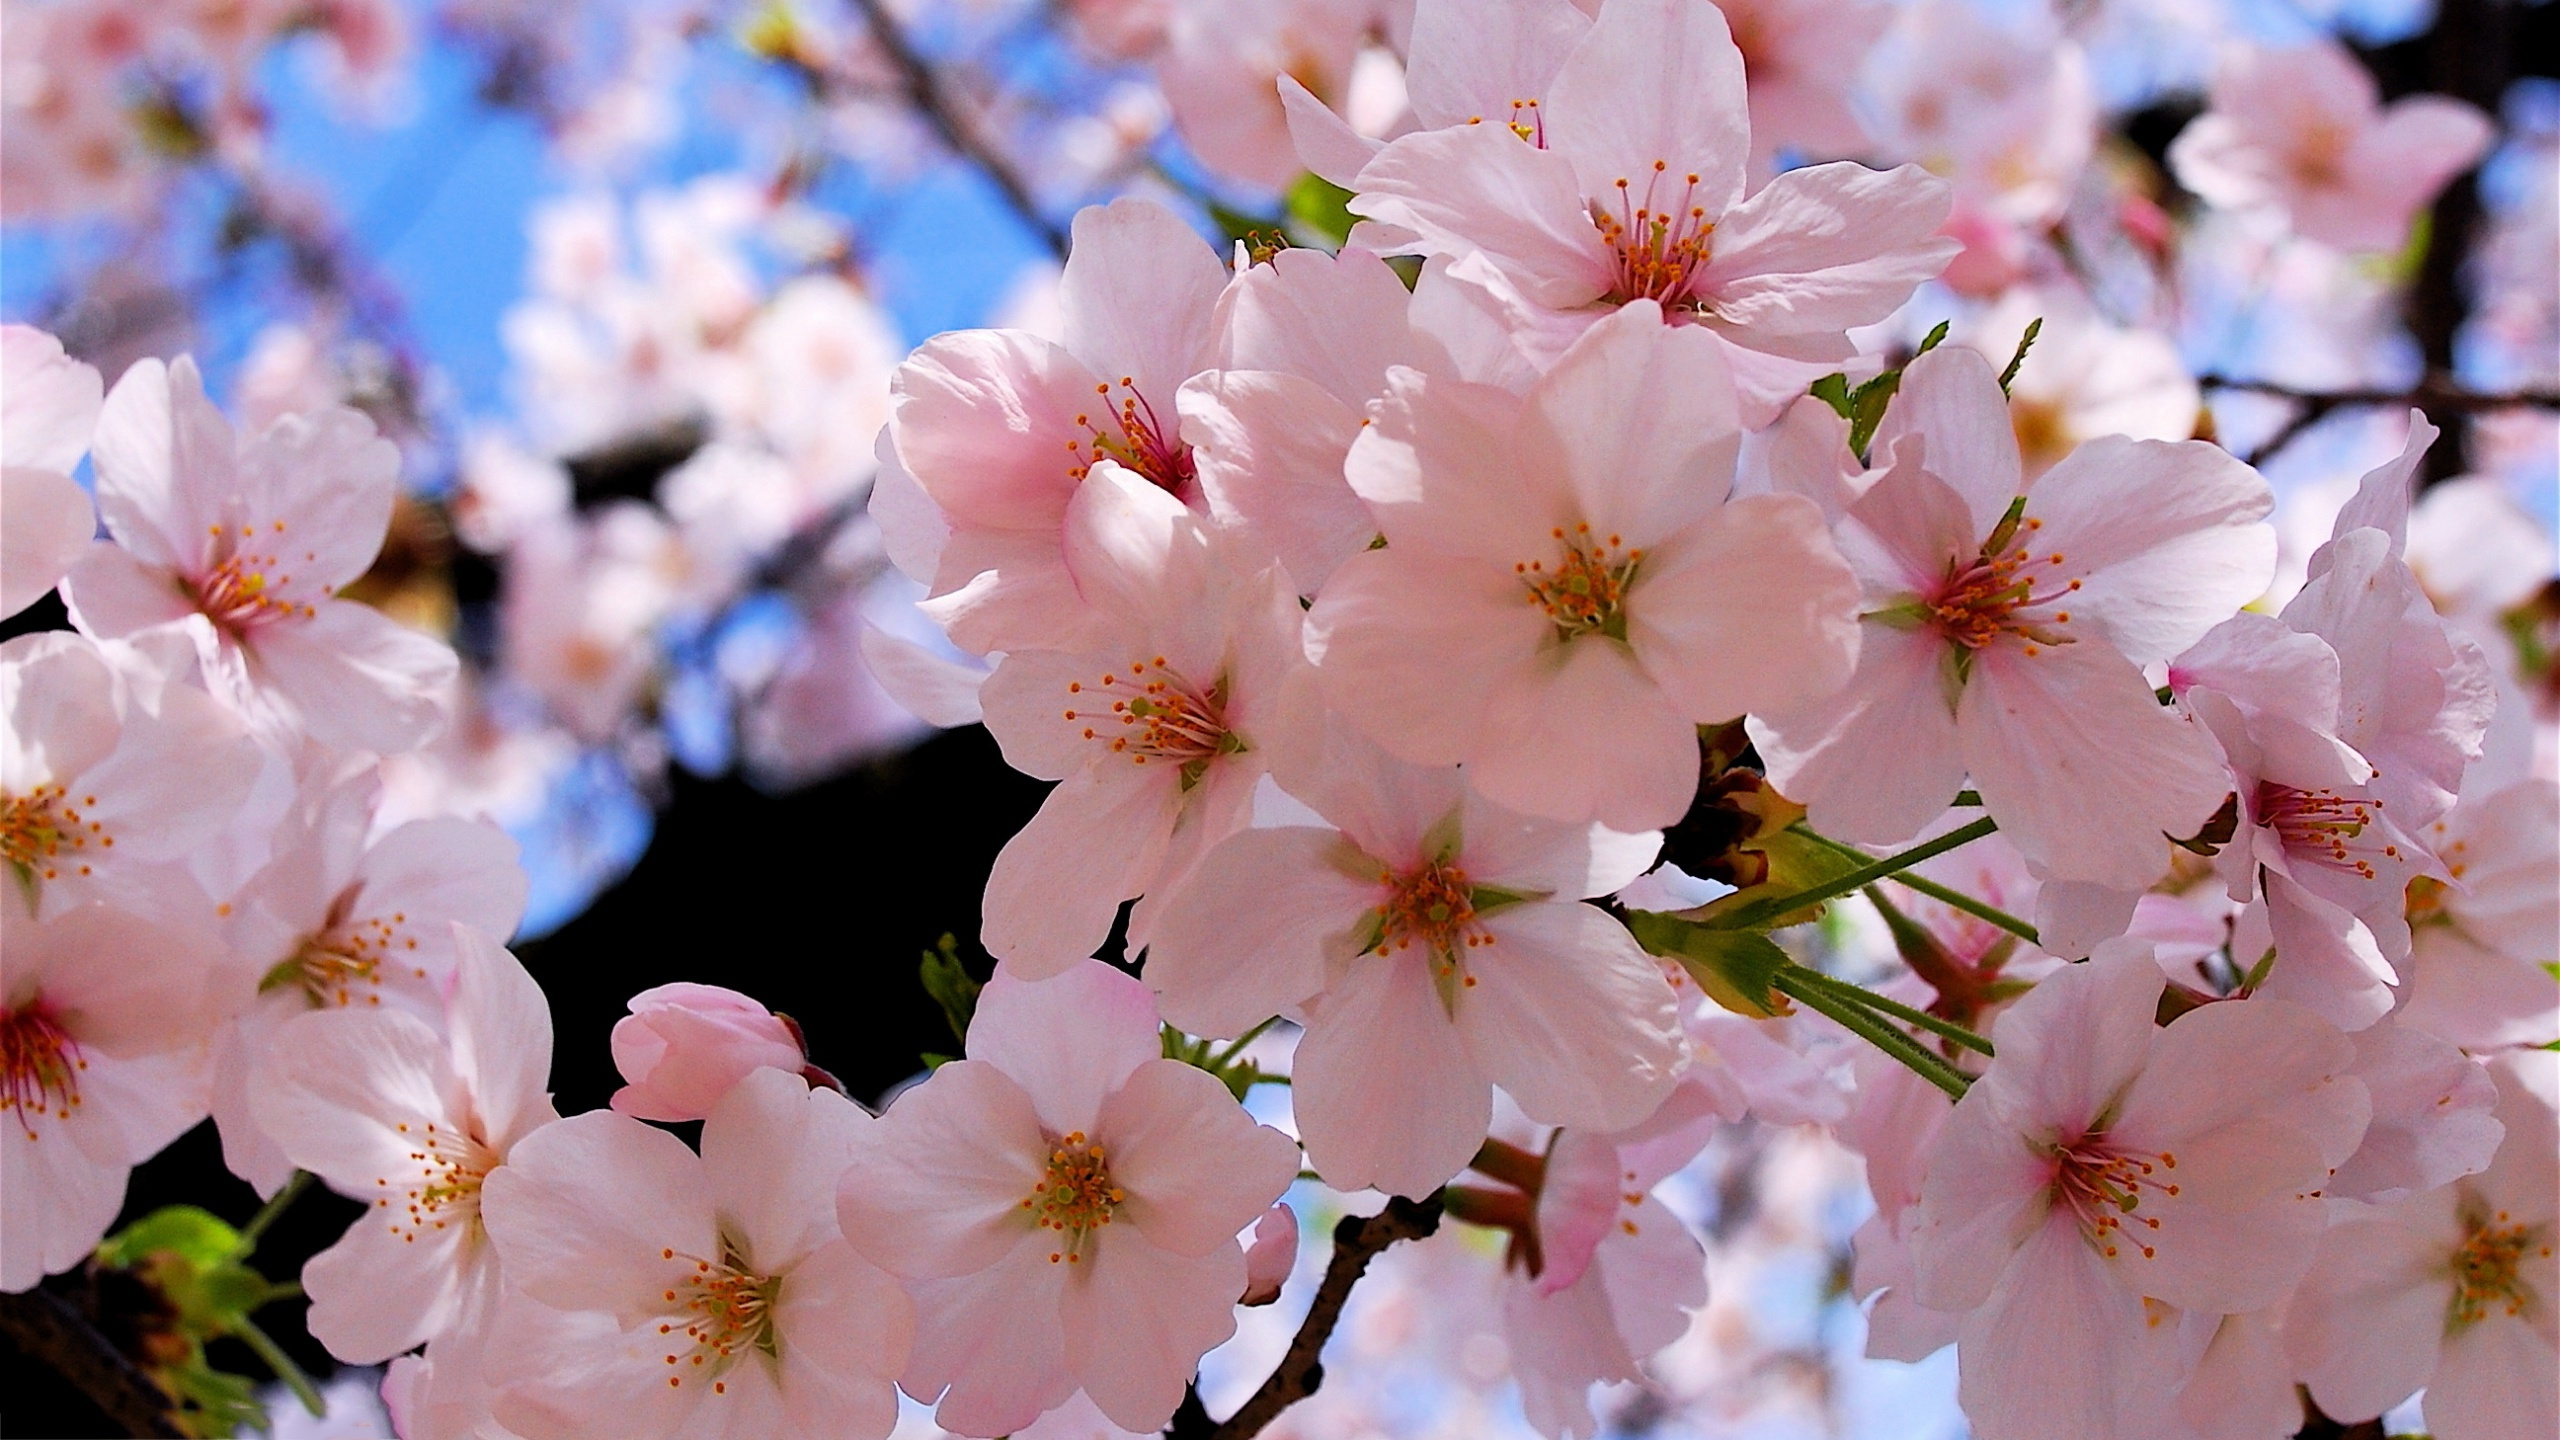 Description: The Wallpaper above is Spring blossoms Wallpaper in Resolution 2560x1440. Choose your Resolution and Download Spring blossoms Wallpaper